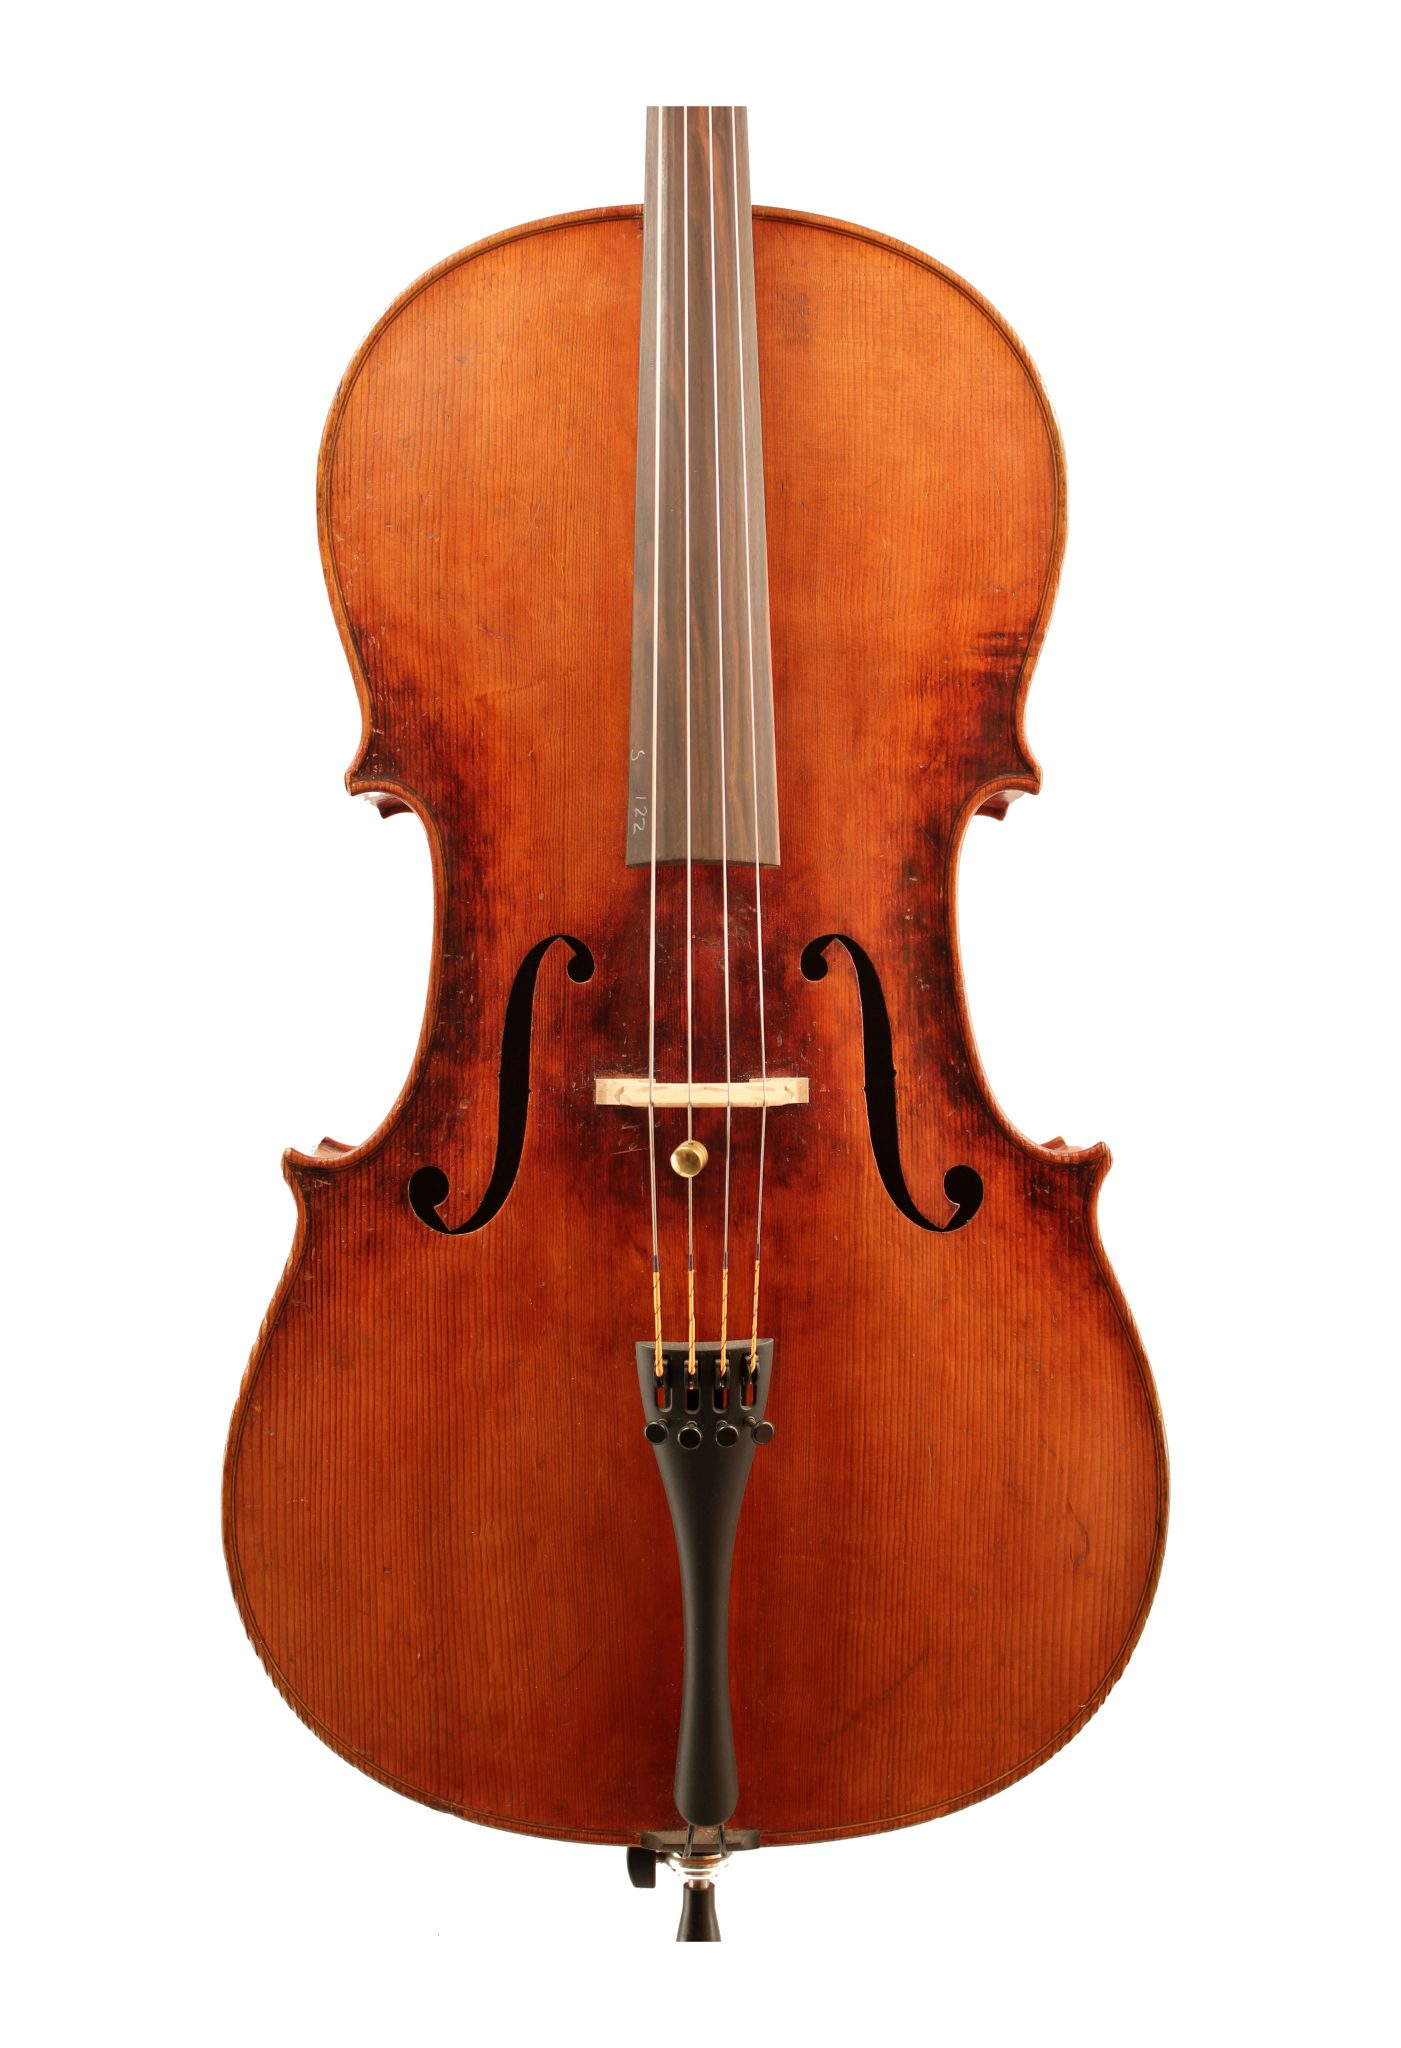 German cello c1890 for sale at Bridgewood and Neitzert London